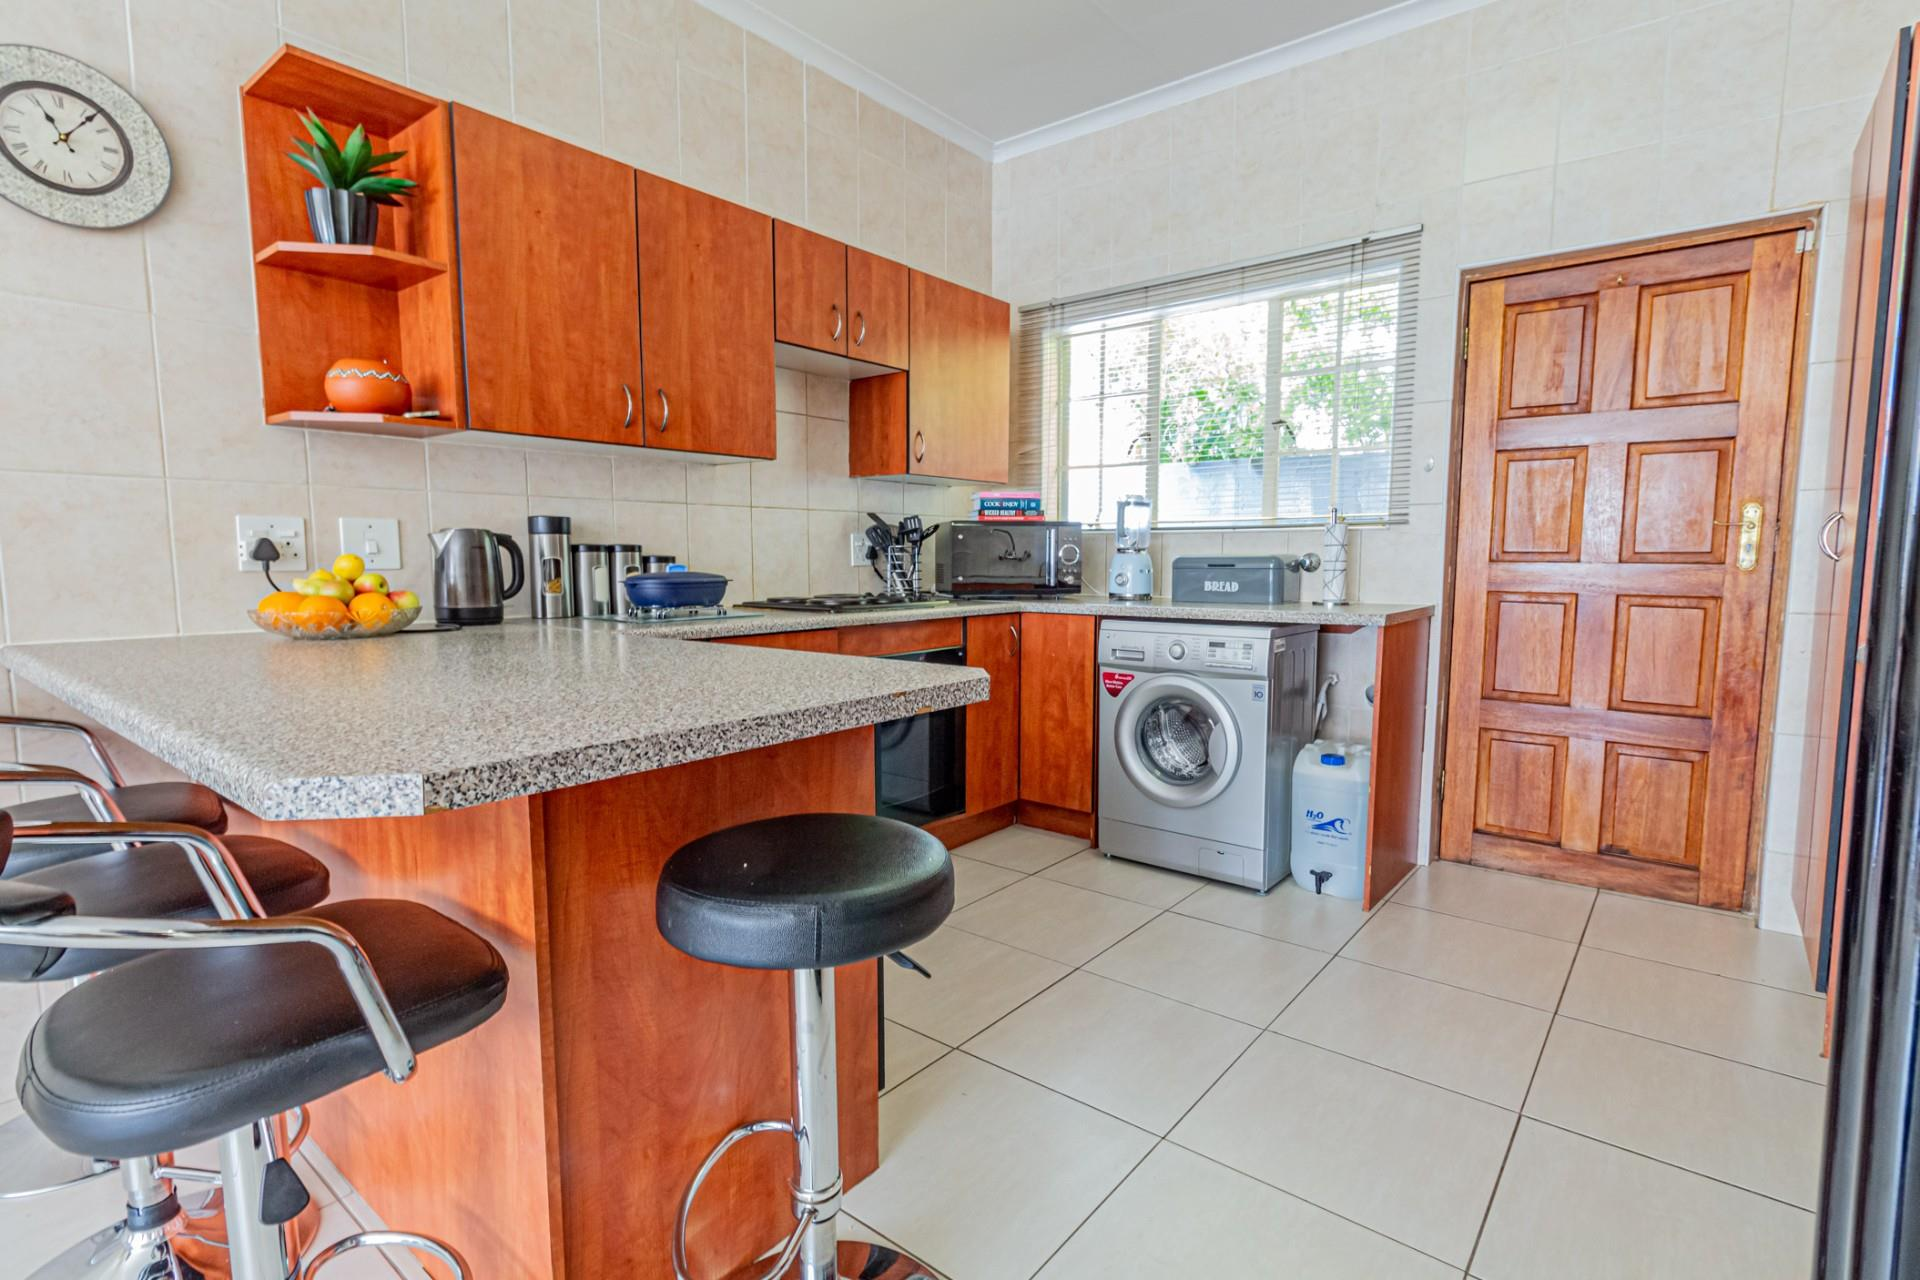 3 Bedroom Townhouse For Sale in Northgate